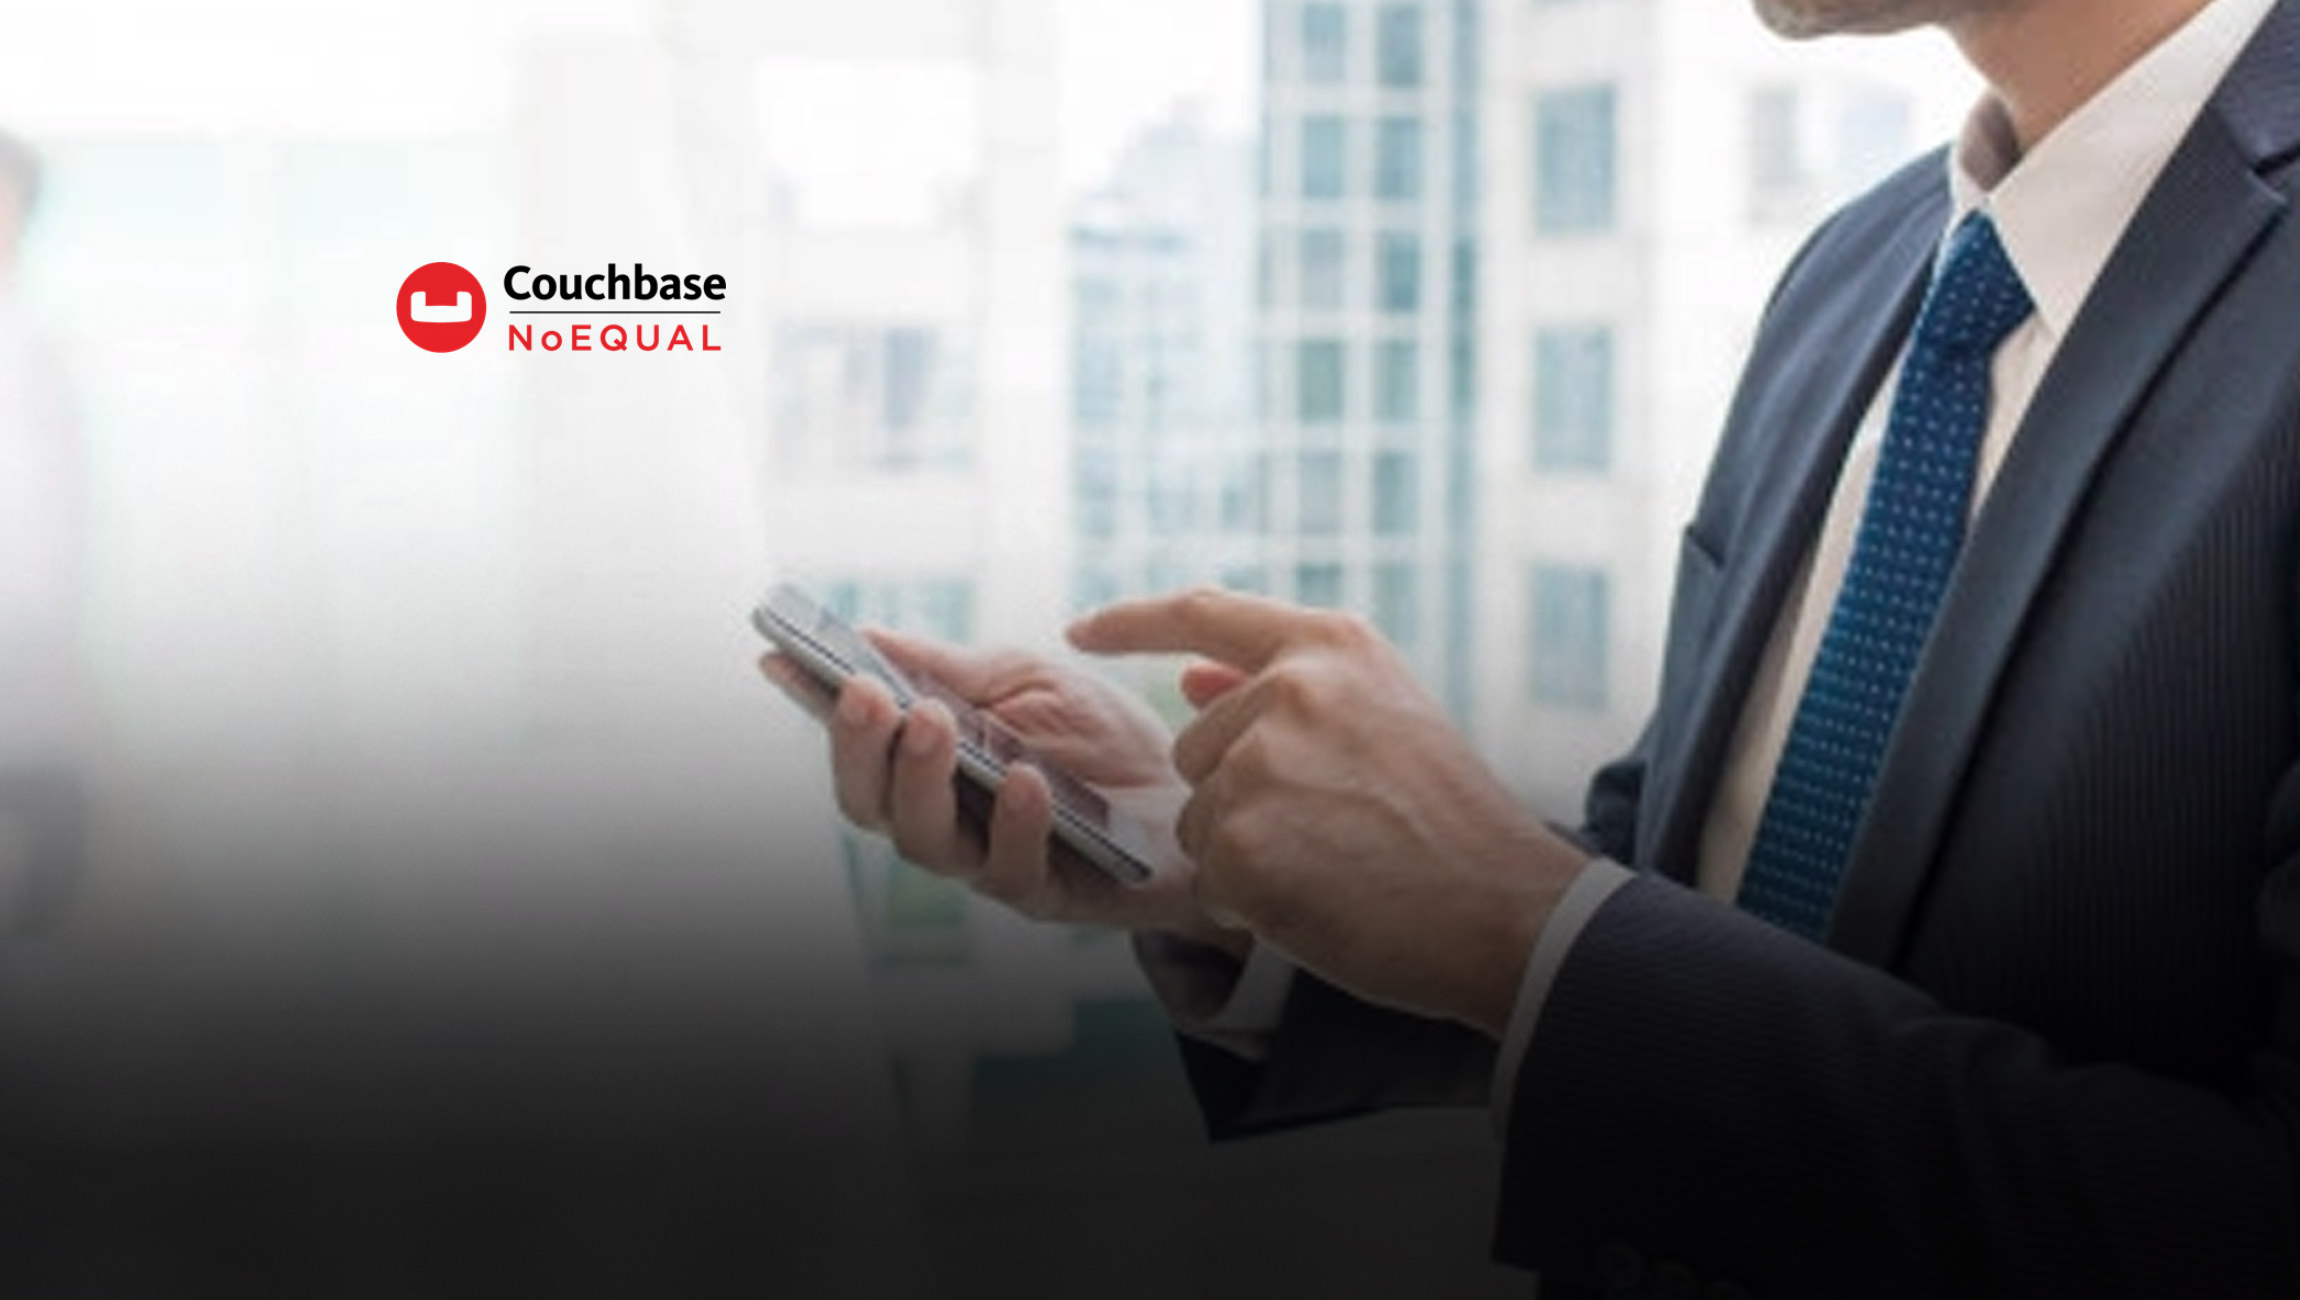 UPDATE: Developers Have Potential to Revolutionize Digital Transformation Efforts During COVID-19 Despite Challenges, Couchbase Research Finds